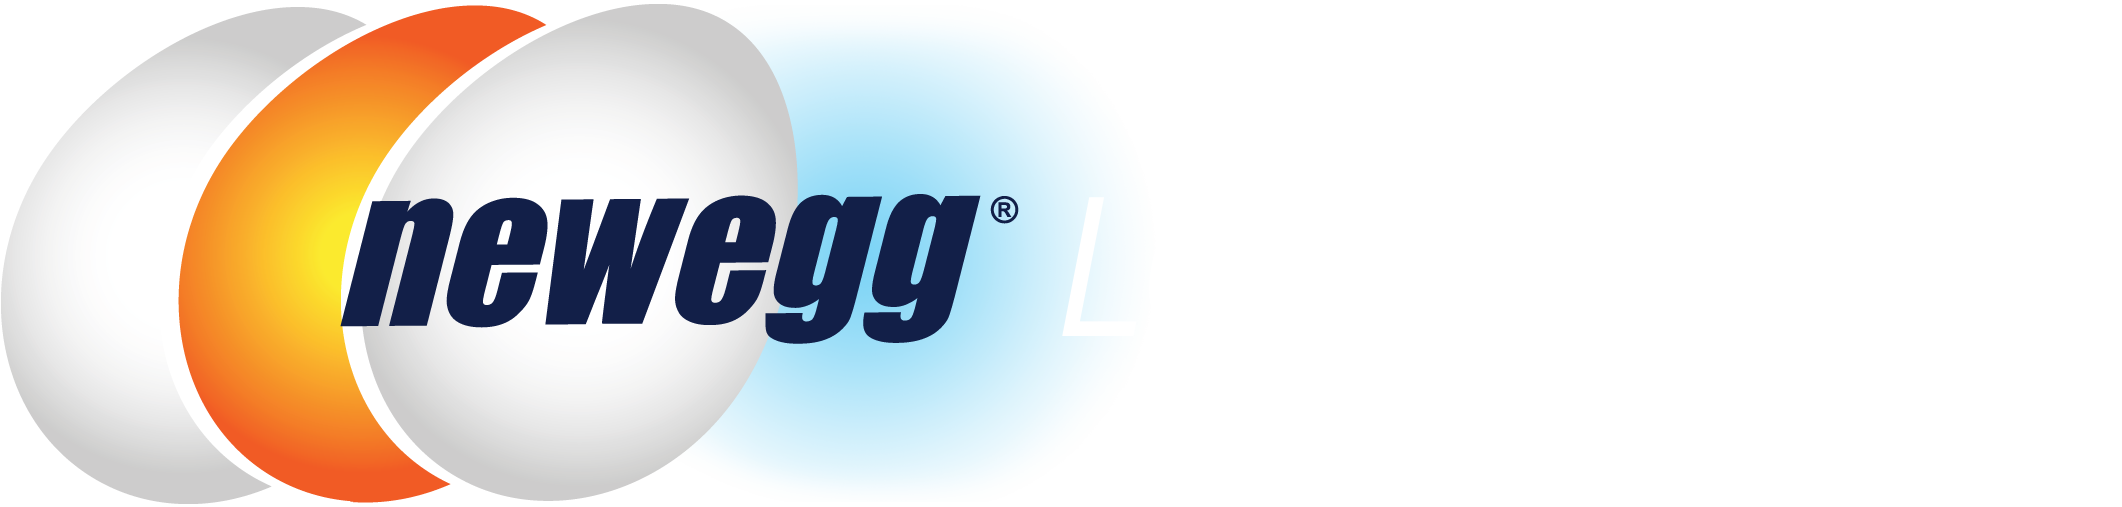 Newegg Logistics